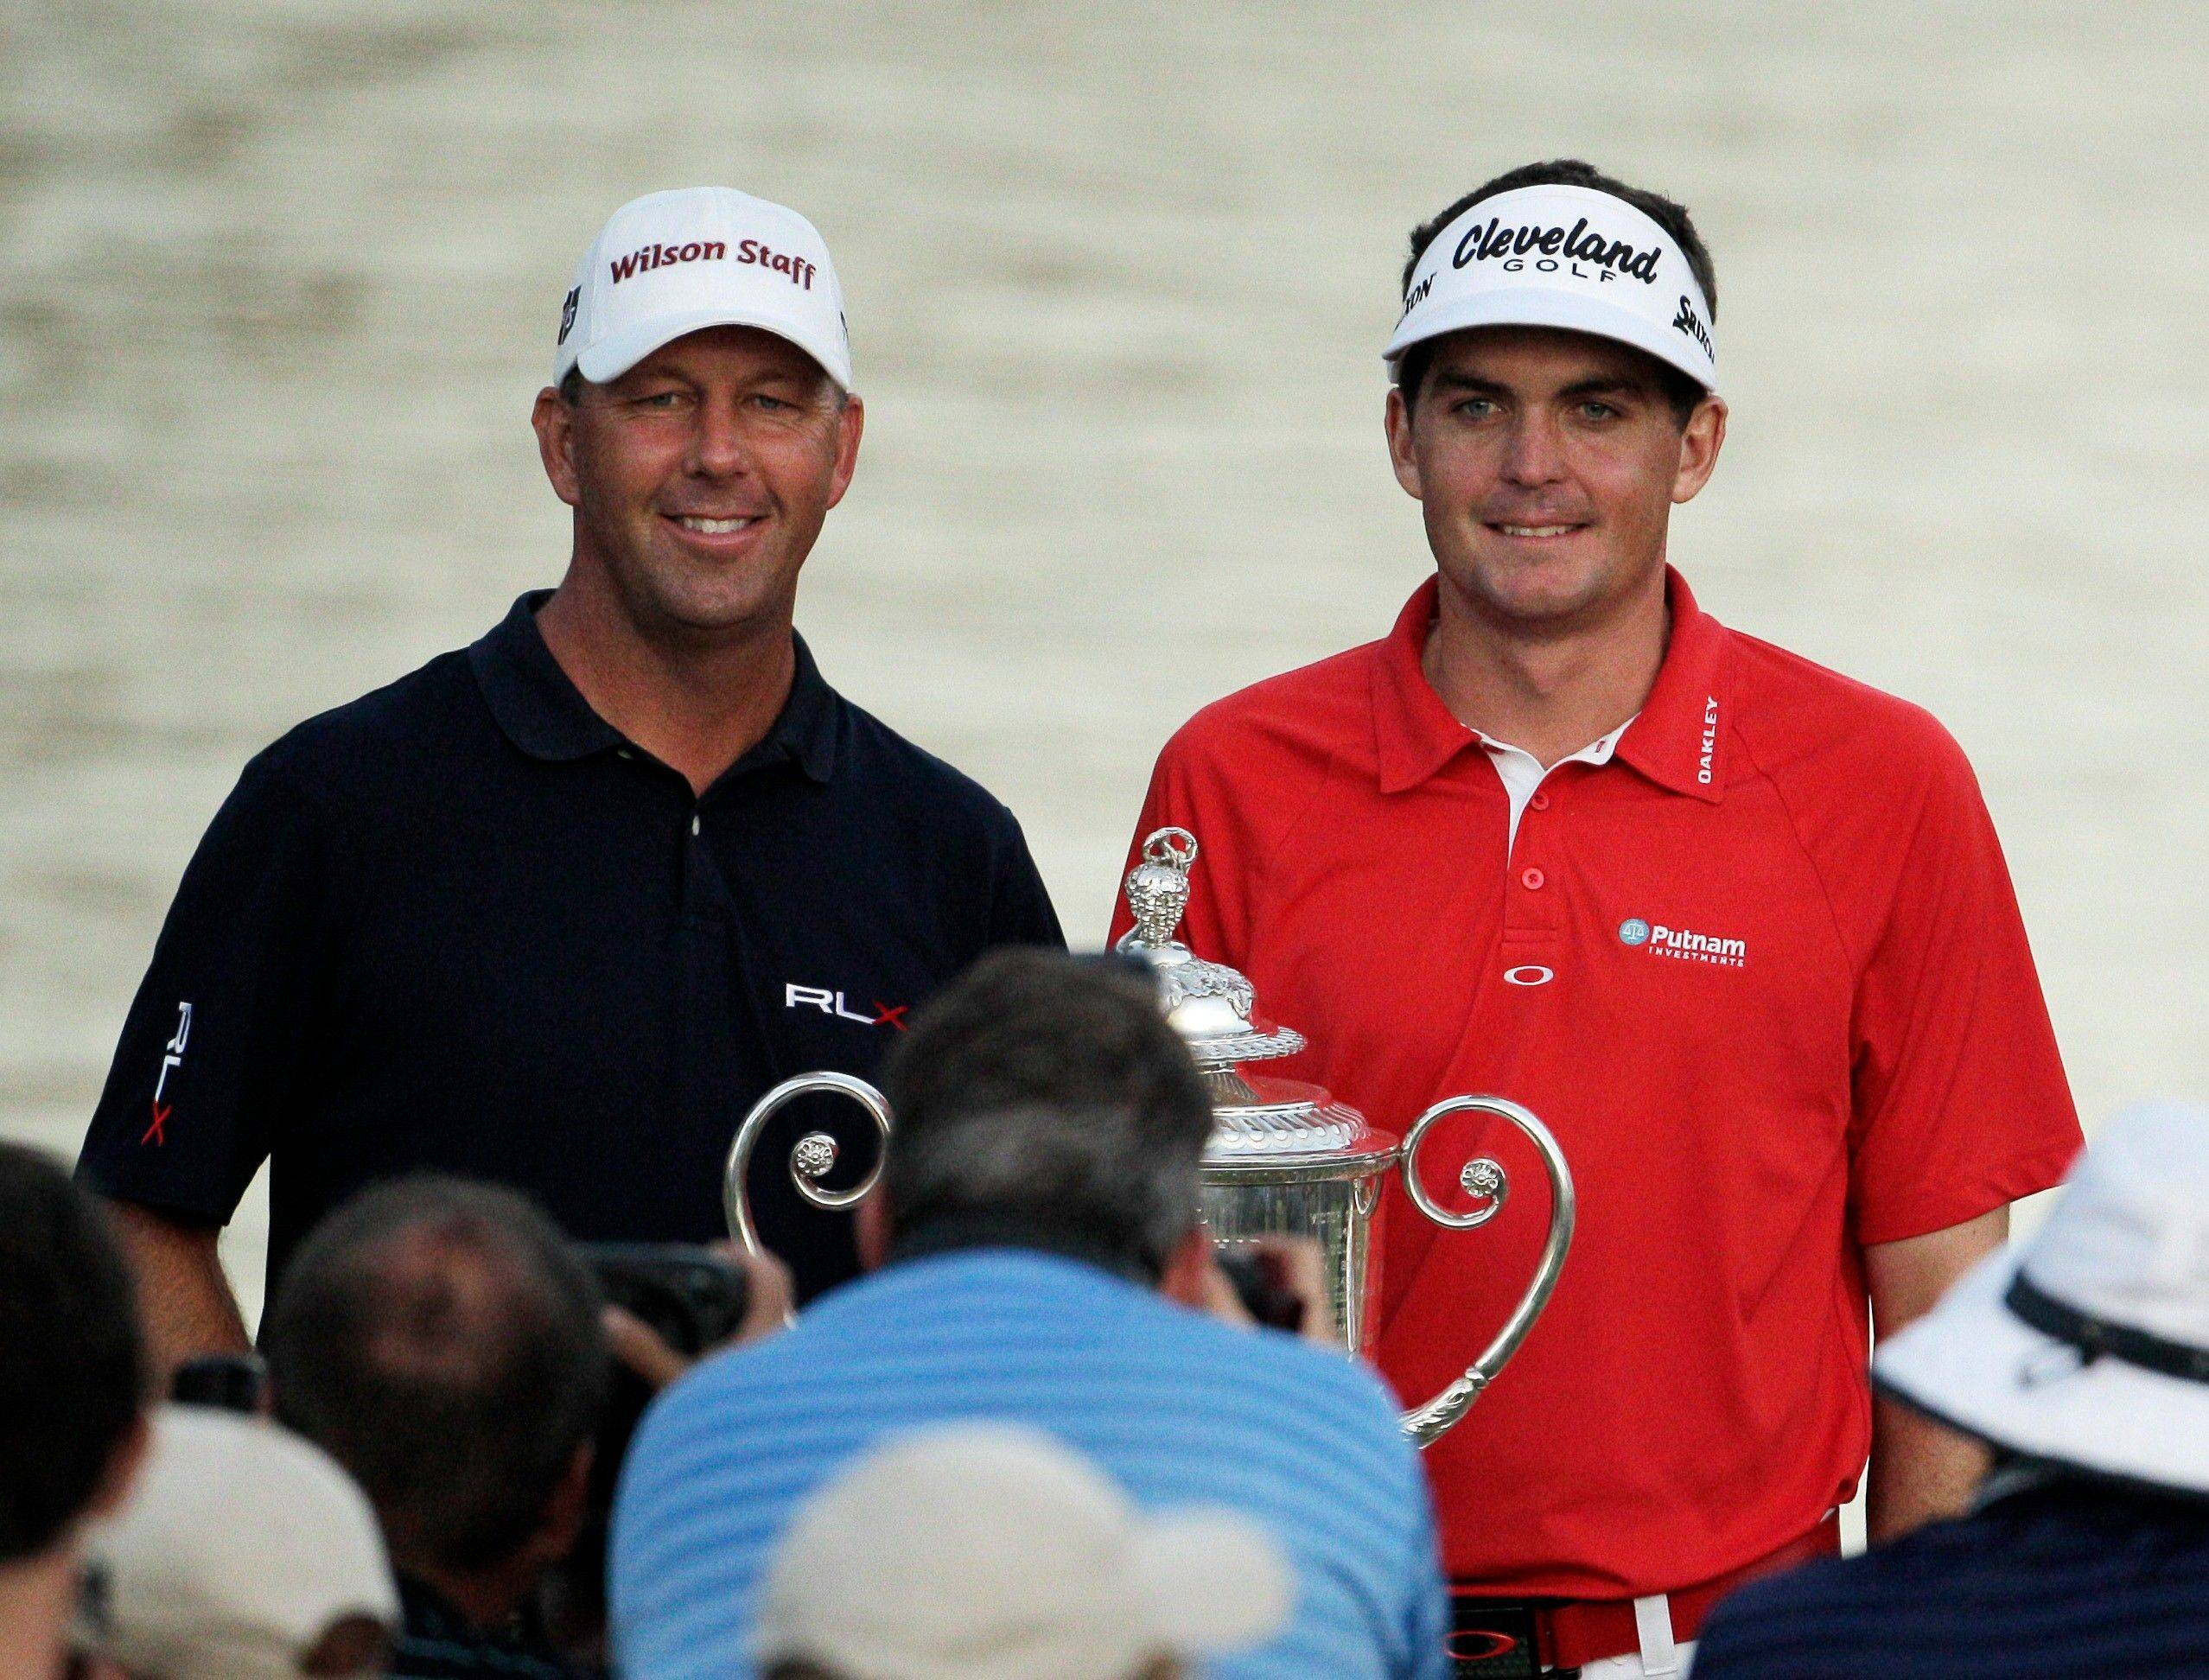 Mike Small, left, posed with PGA Chamionship winner Keegan Bradley at the Atlanta Athletic Club in Johns Creek, Ga. Small was the only club pro to make the cut.